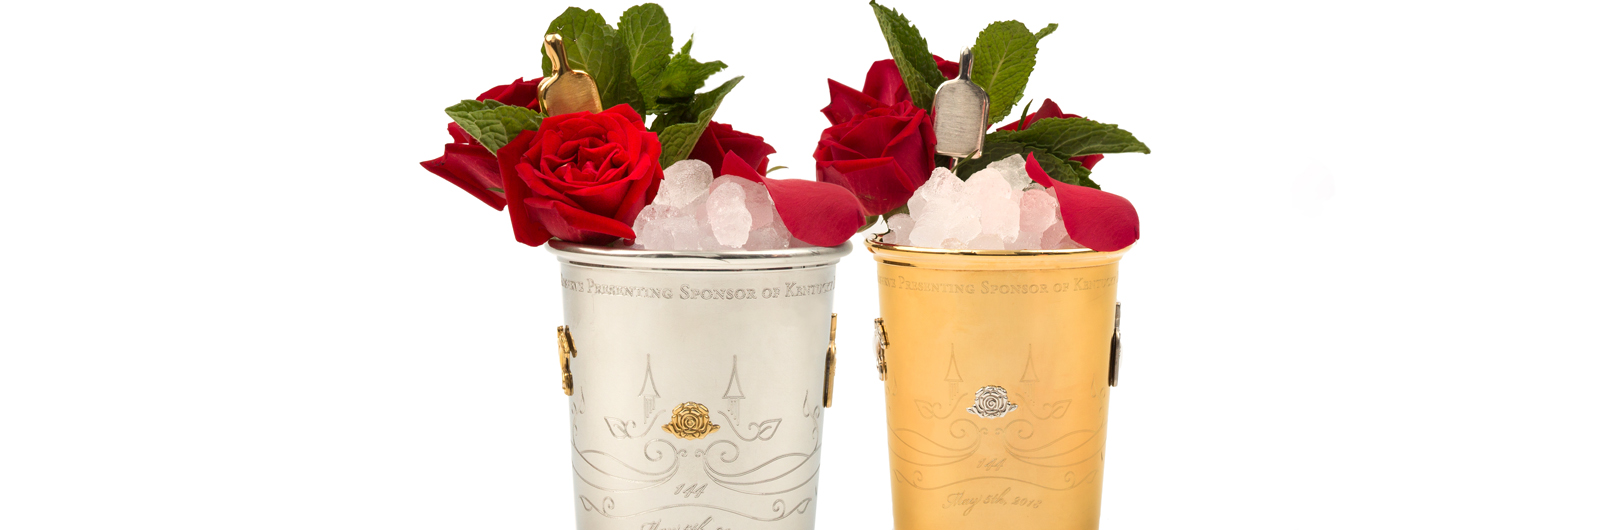 The $1,000 Mint Julep Recipe From the Kentucky Derby | The